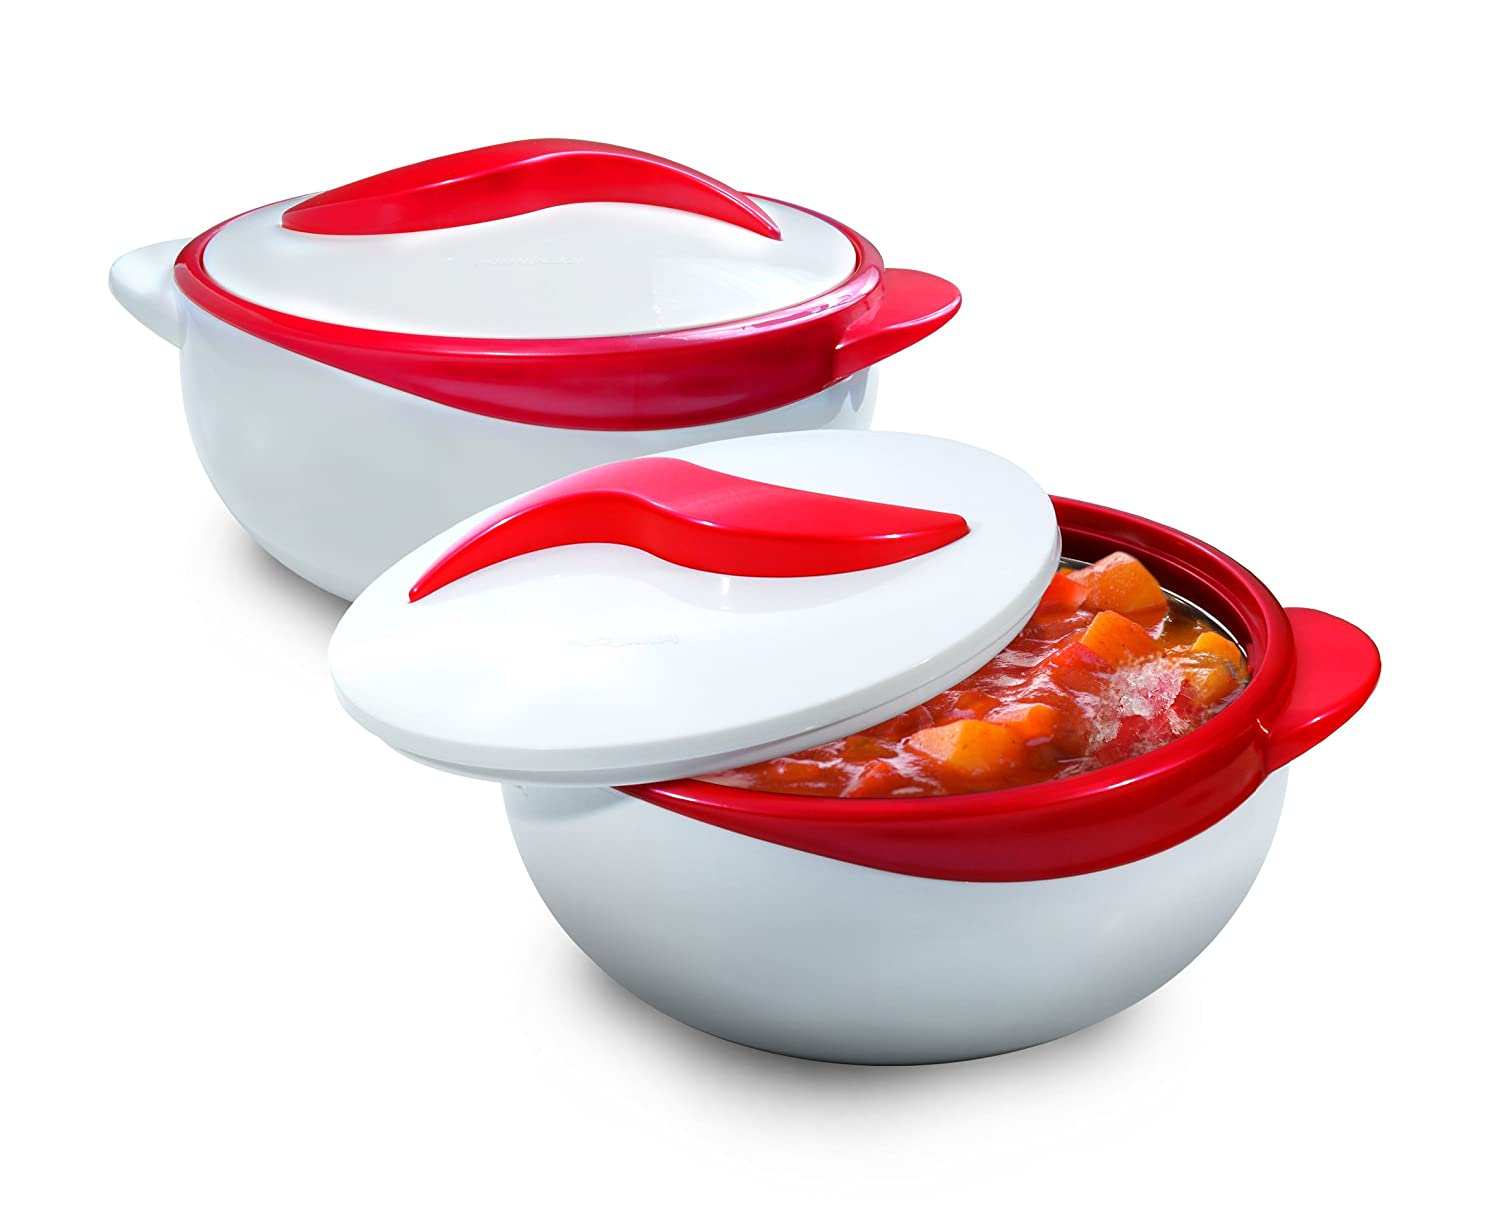 Dinner and Party~ Set of 2 Thermal Insulated Bowl with Lid -Great Bowl for Holiday Red Pinnacle Serving Salad// Soup Dish Bowl